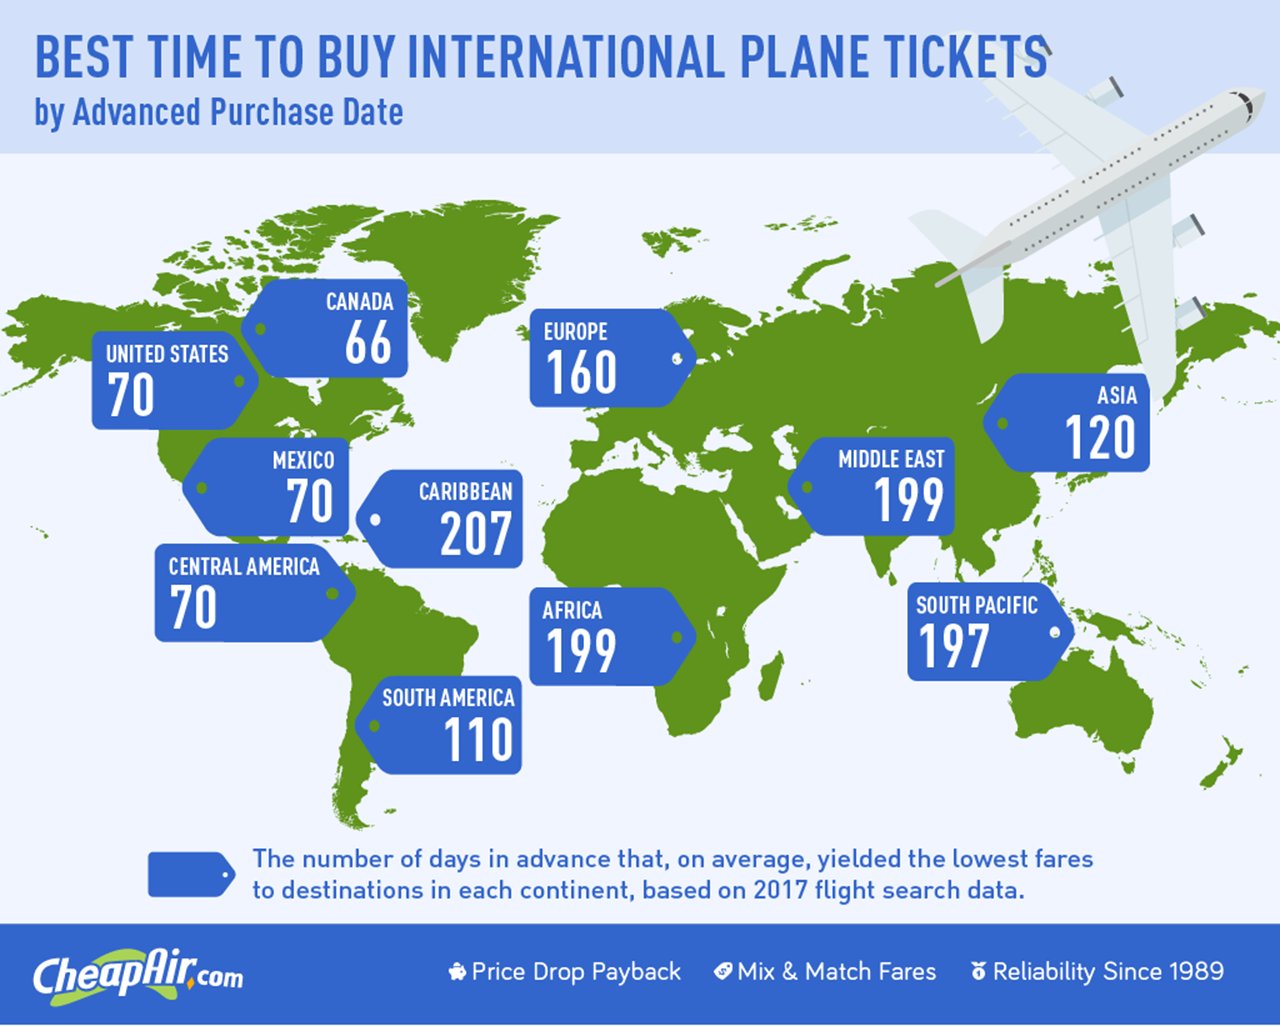 These Are the Best Times to Buy an International Flight